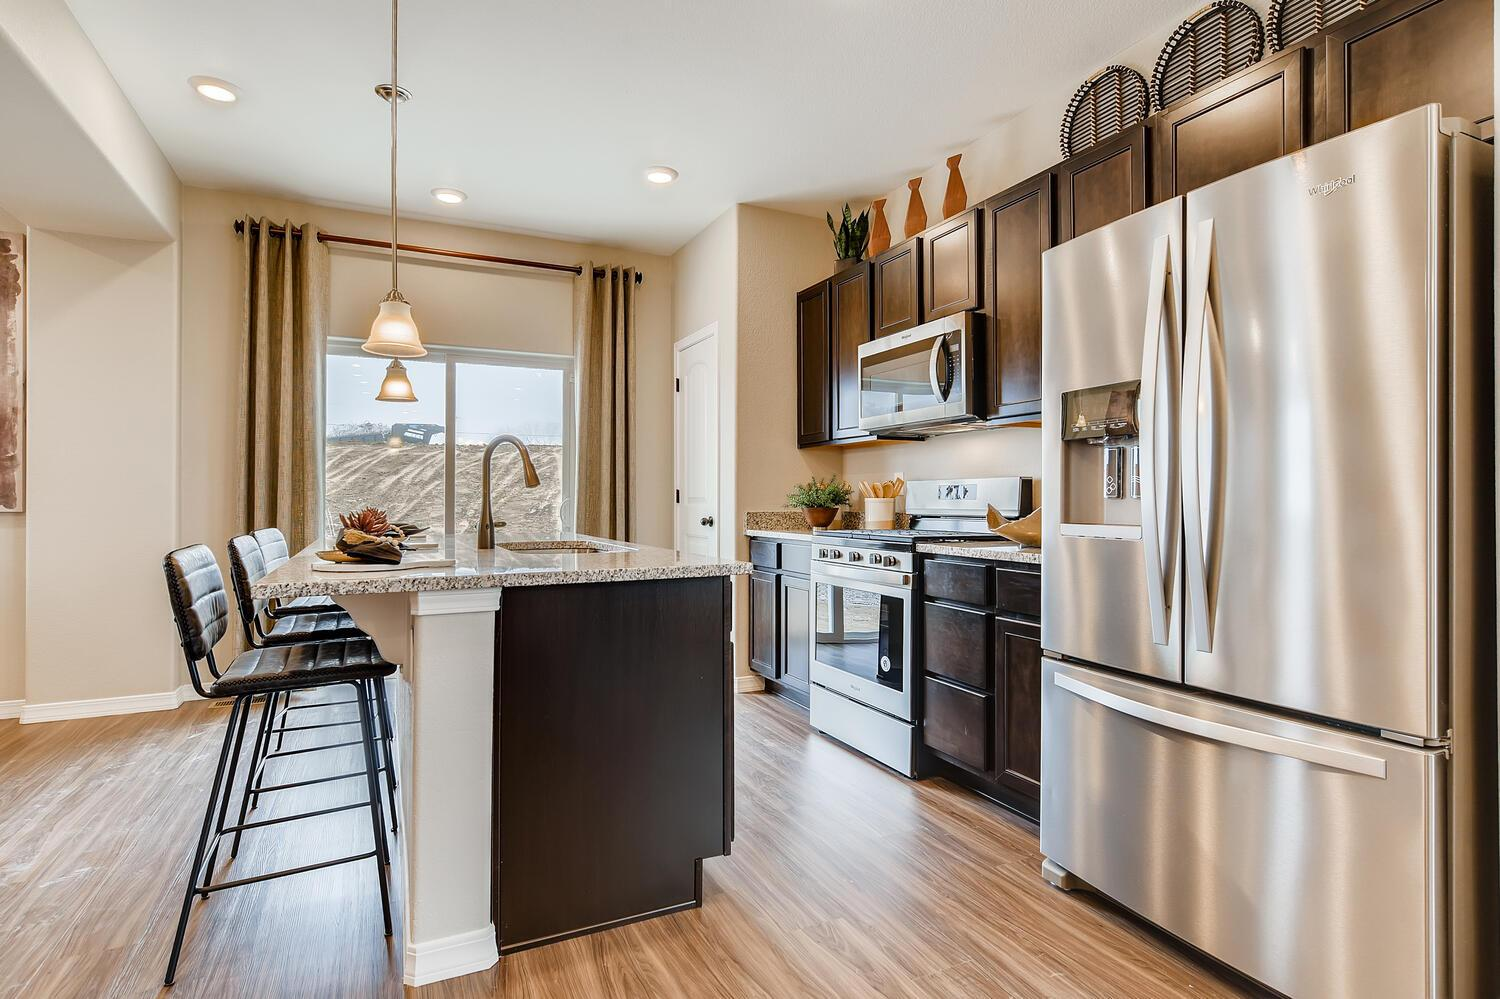 Kitchen featured in the Platinum (Residence 29204) By Century Communities in Colorado Springs, CO